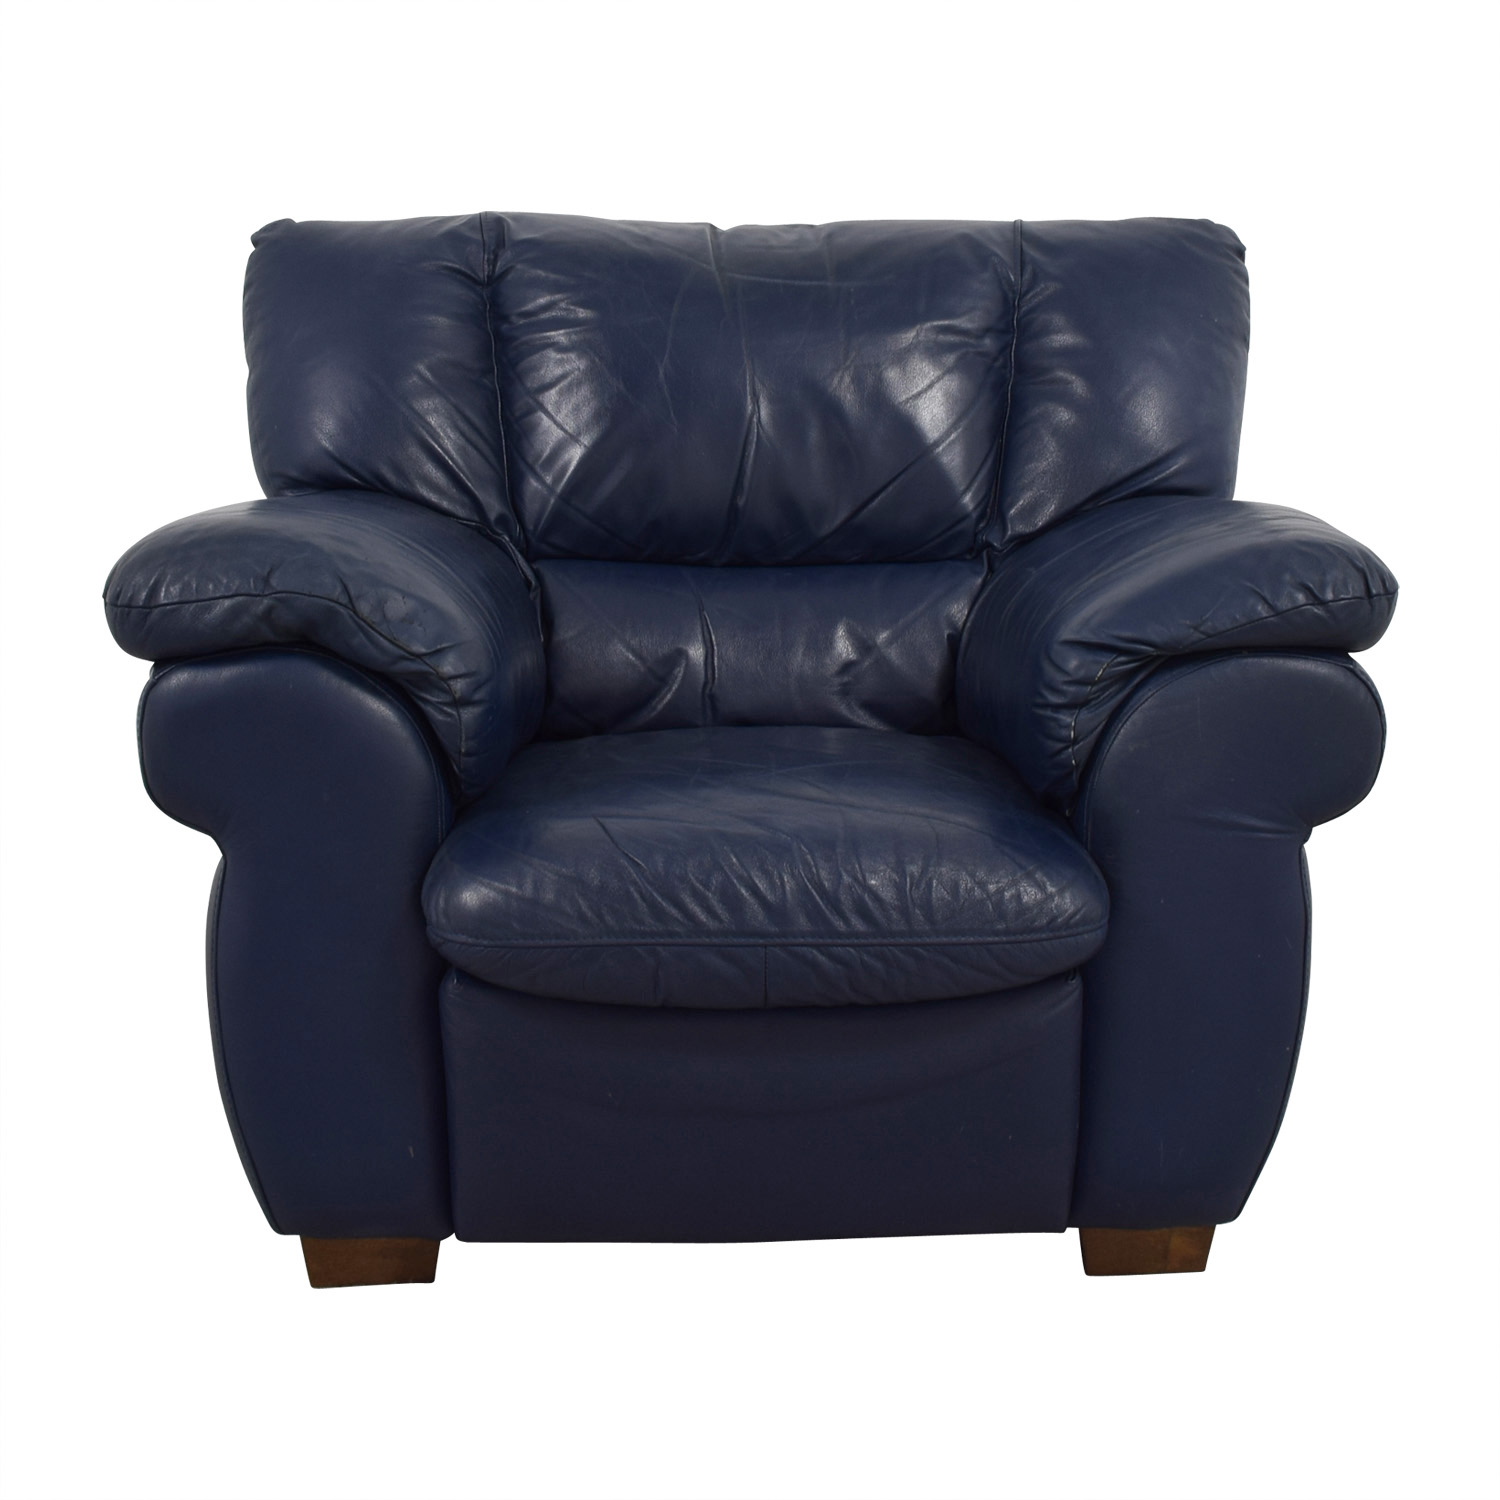 Macys Leather Chair 90 Off Macy S Macy S Navy Blue Leather Sofa Chair Chairs